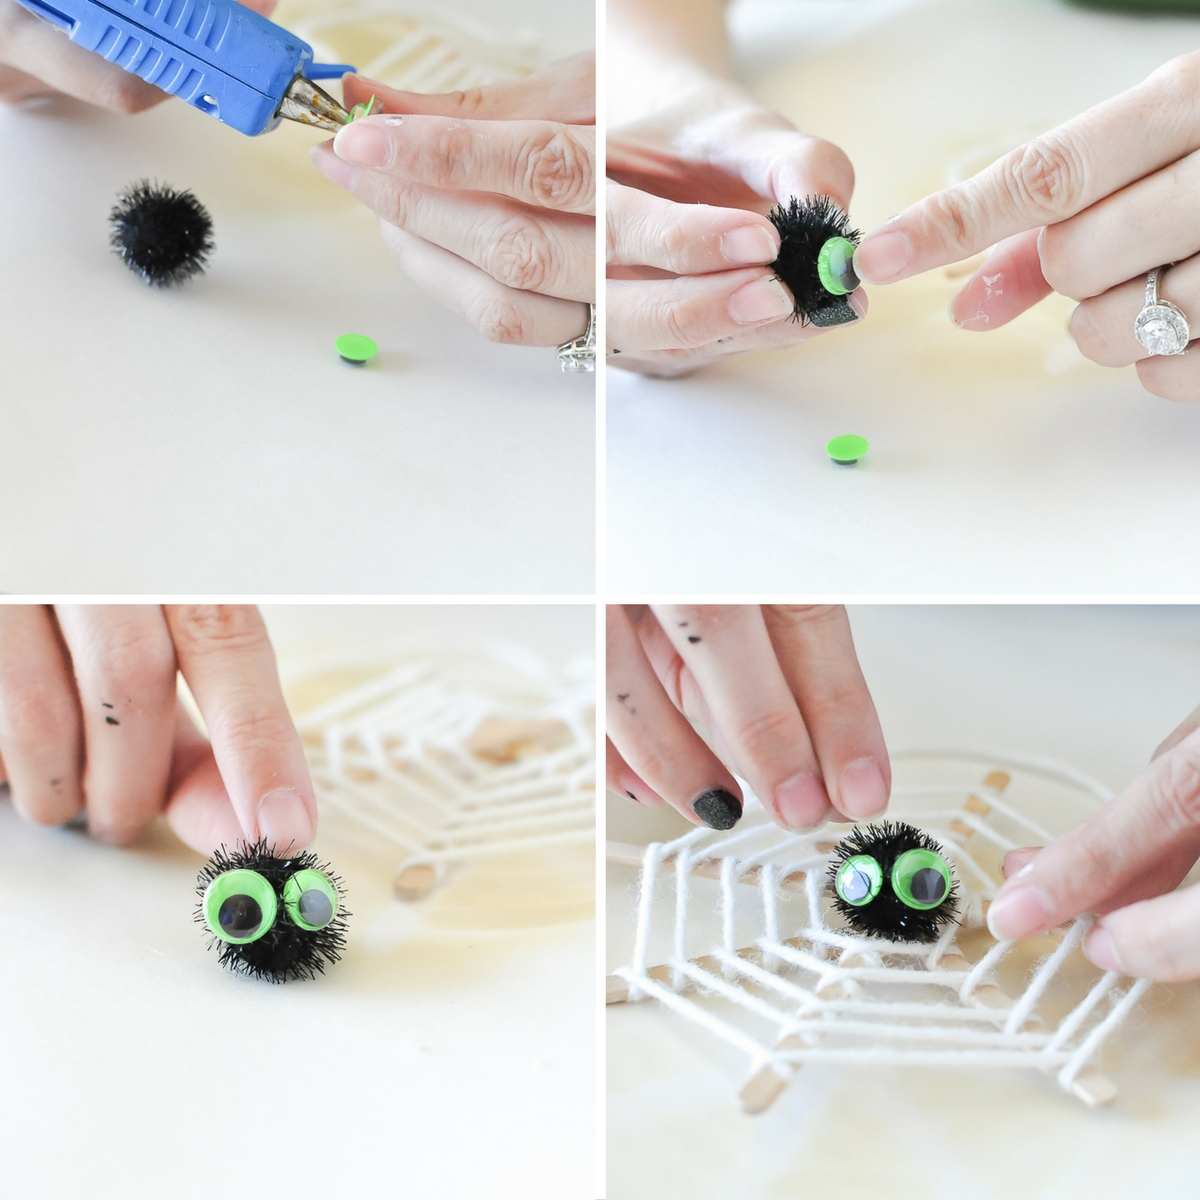 Spider-Five-Minute-Spiderweb Craft | Awesome with Sprinkles